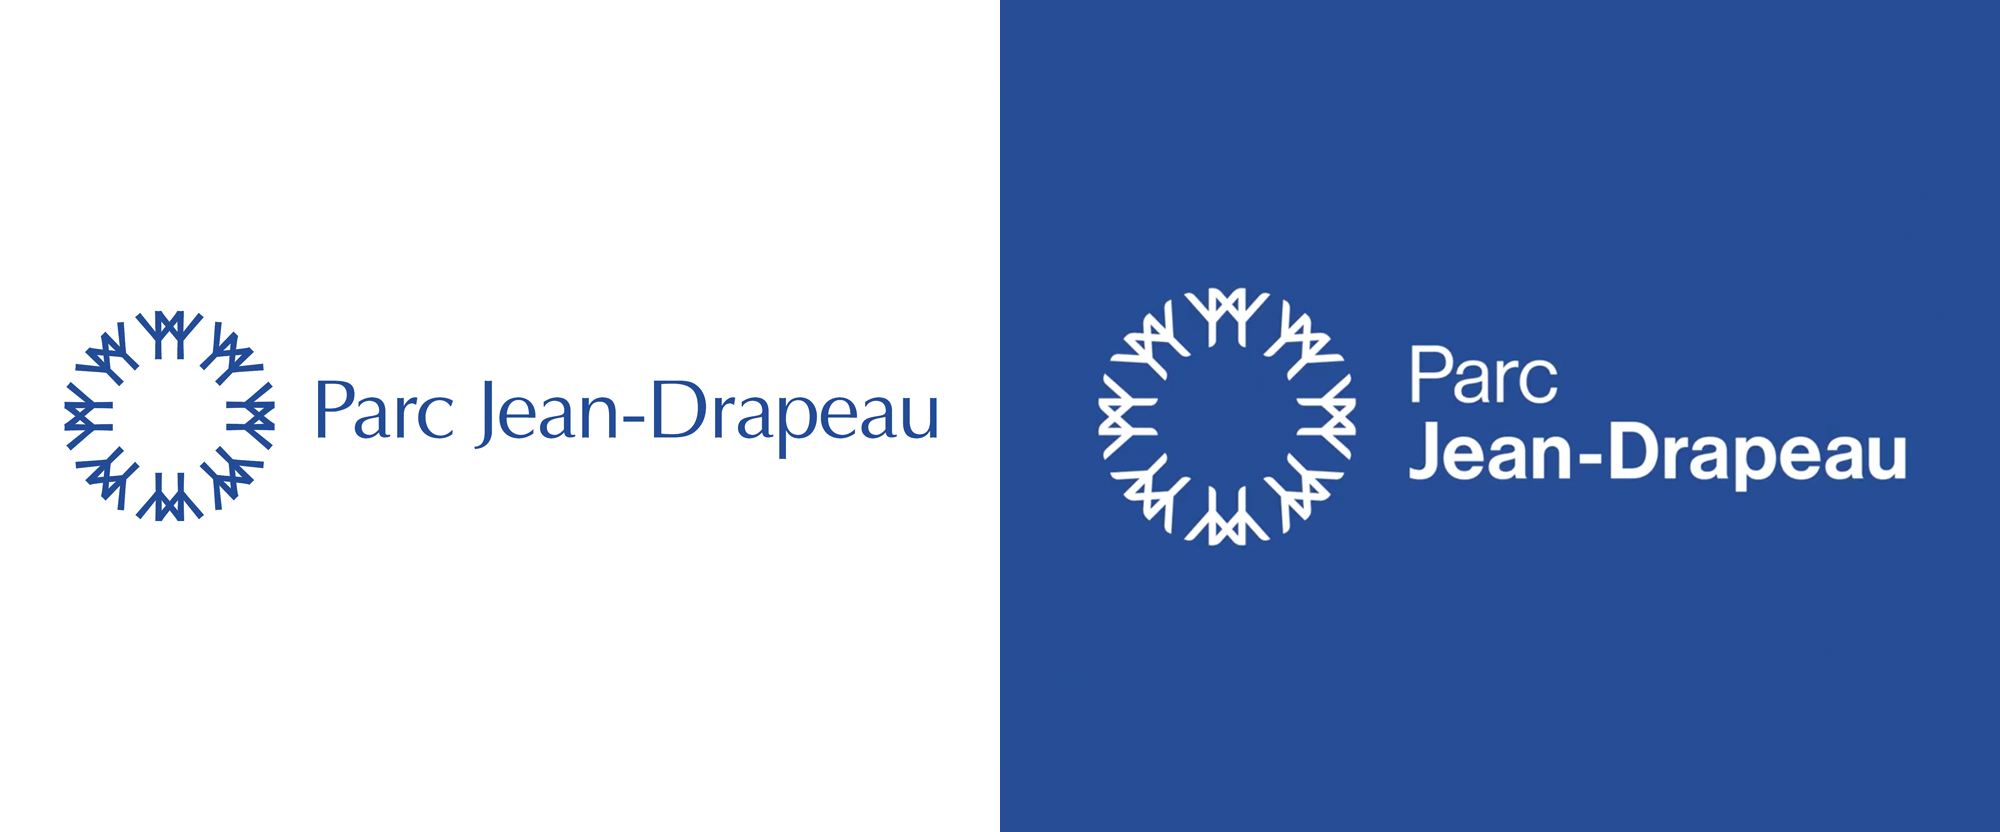 New Logo for Parc Jean-Drapeau by Cabana Séguin